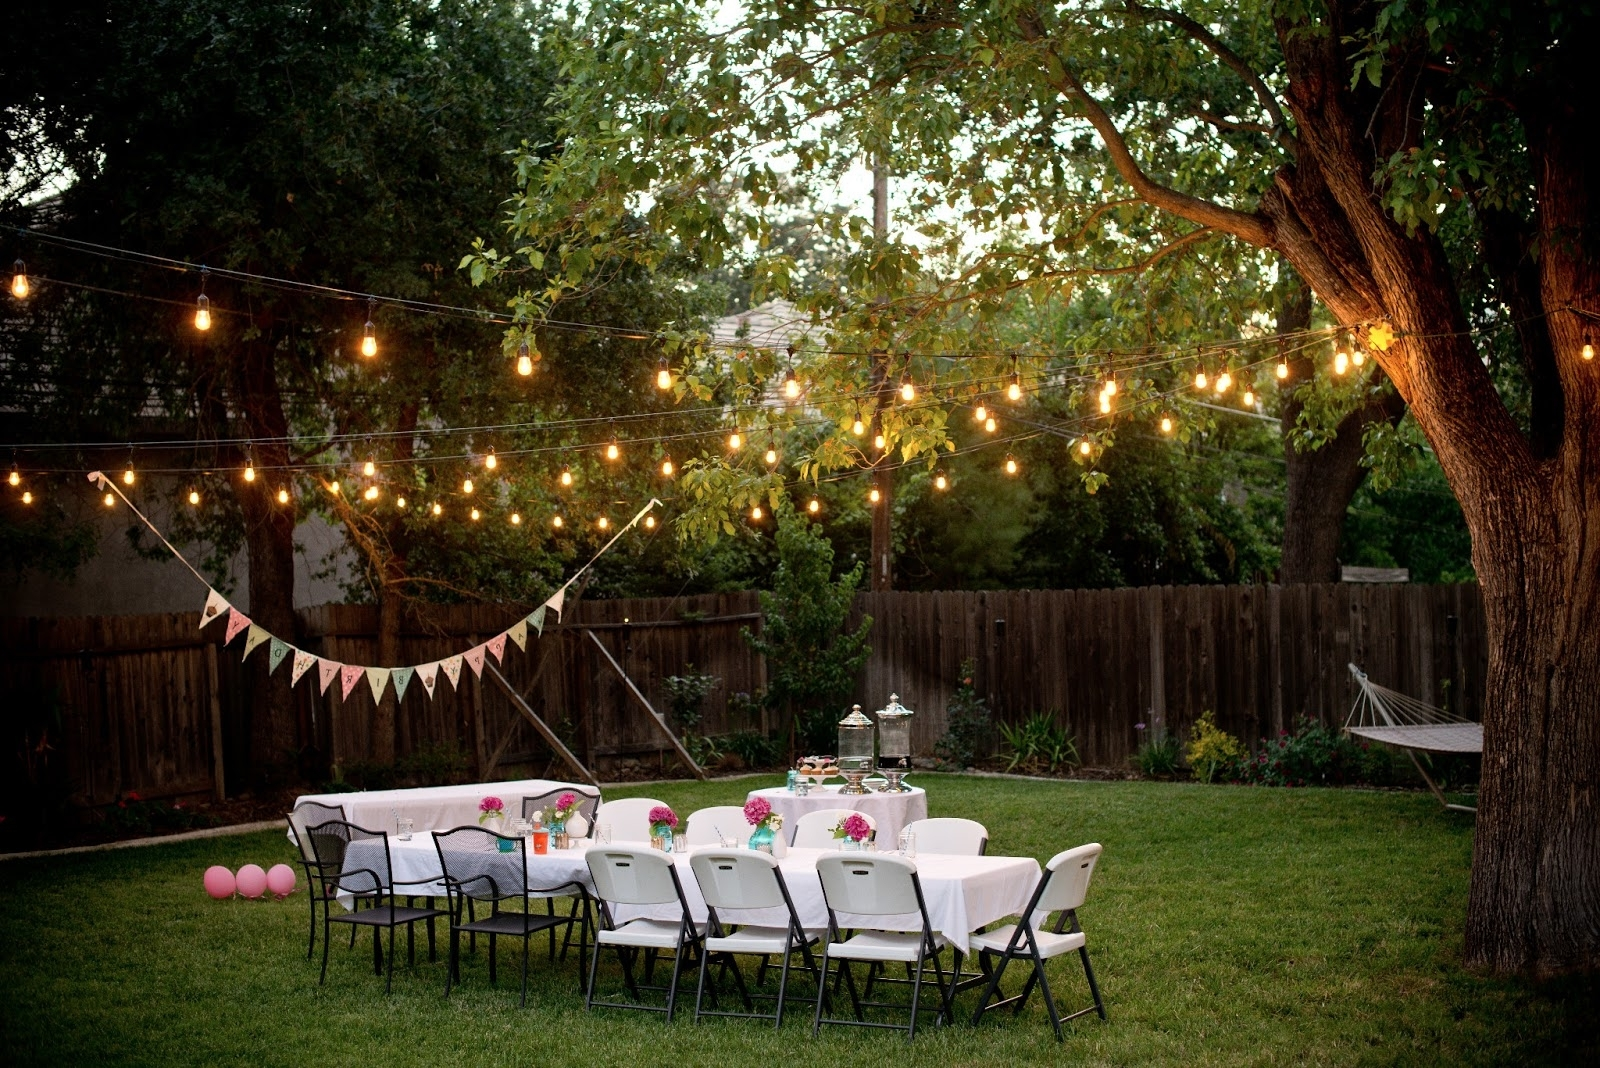 Outdoor Lanterns For Wedding Within Fashionable Cheap Outdoor Lights String Net Party Lighting Ideas For Weddings (Gallery 13 of 20)